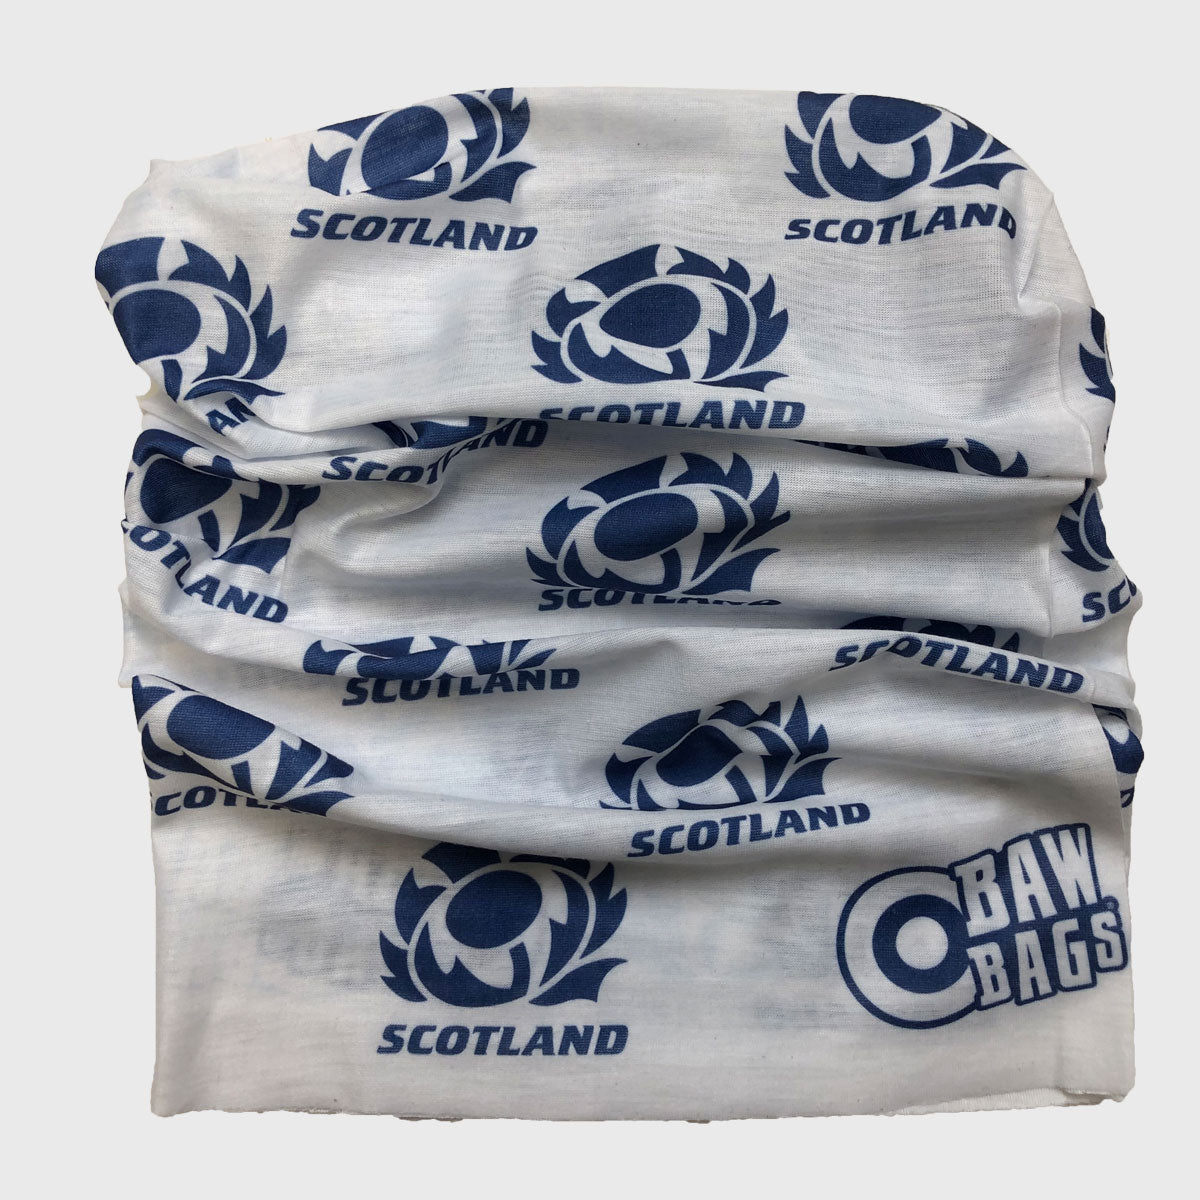 Scotland Rugby Wizard Sleeve Buff White/Navy